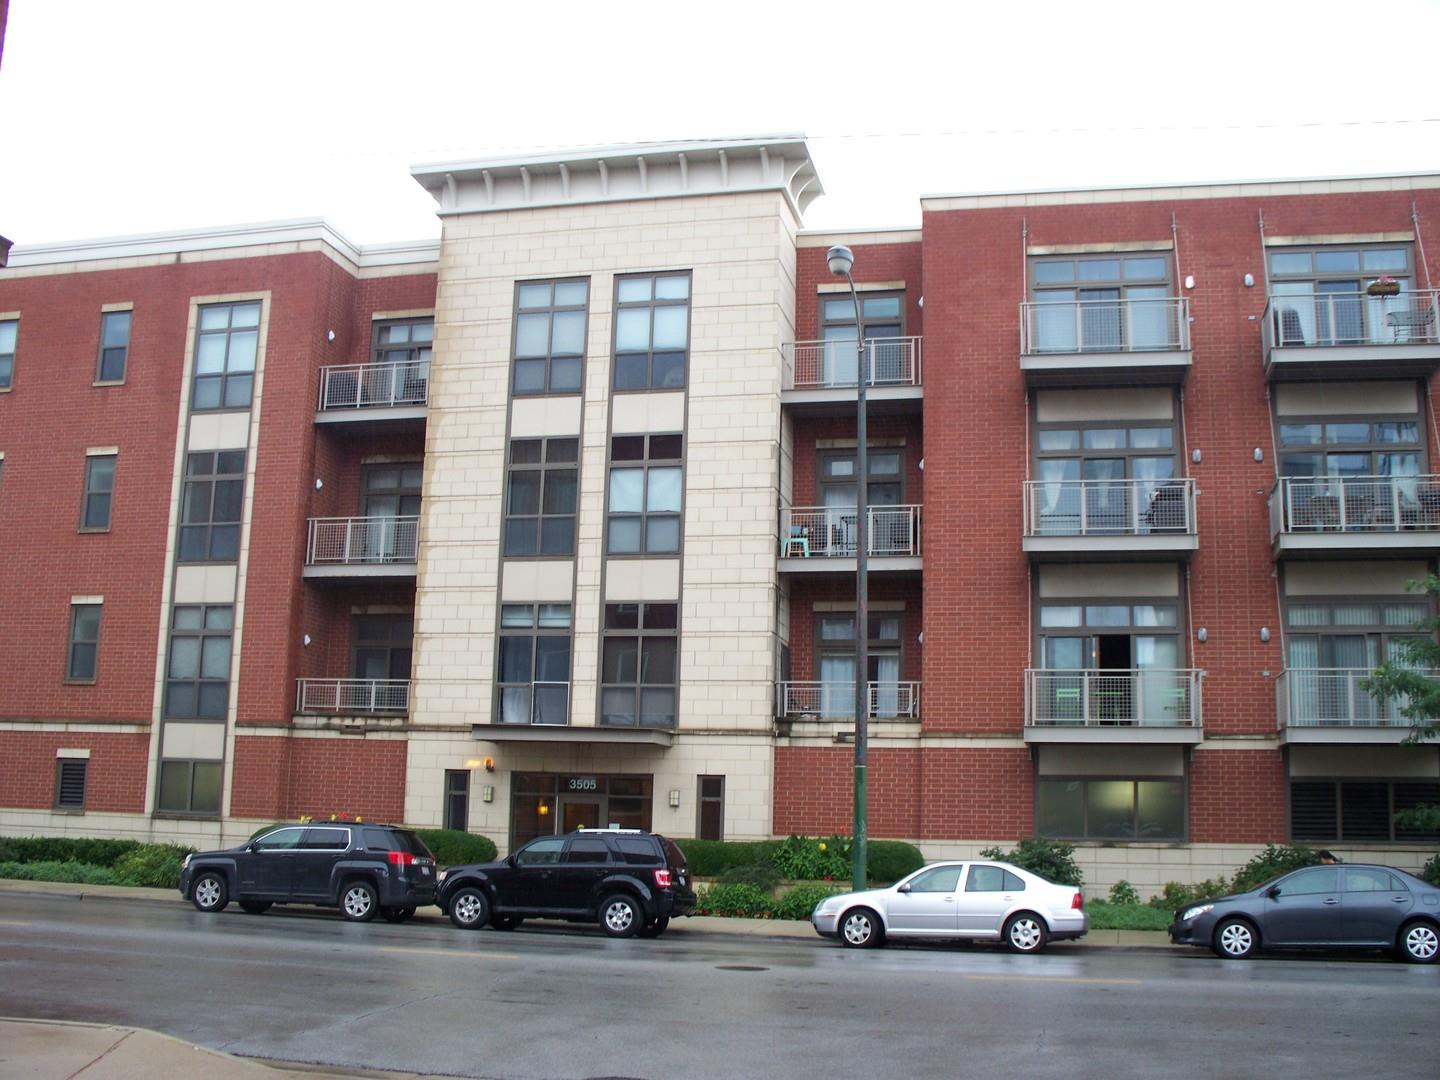 3505 S Morgan Street #P-77, Chicago, IL 60609 - #: 09724715